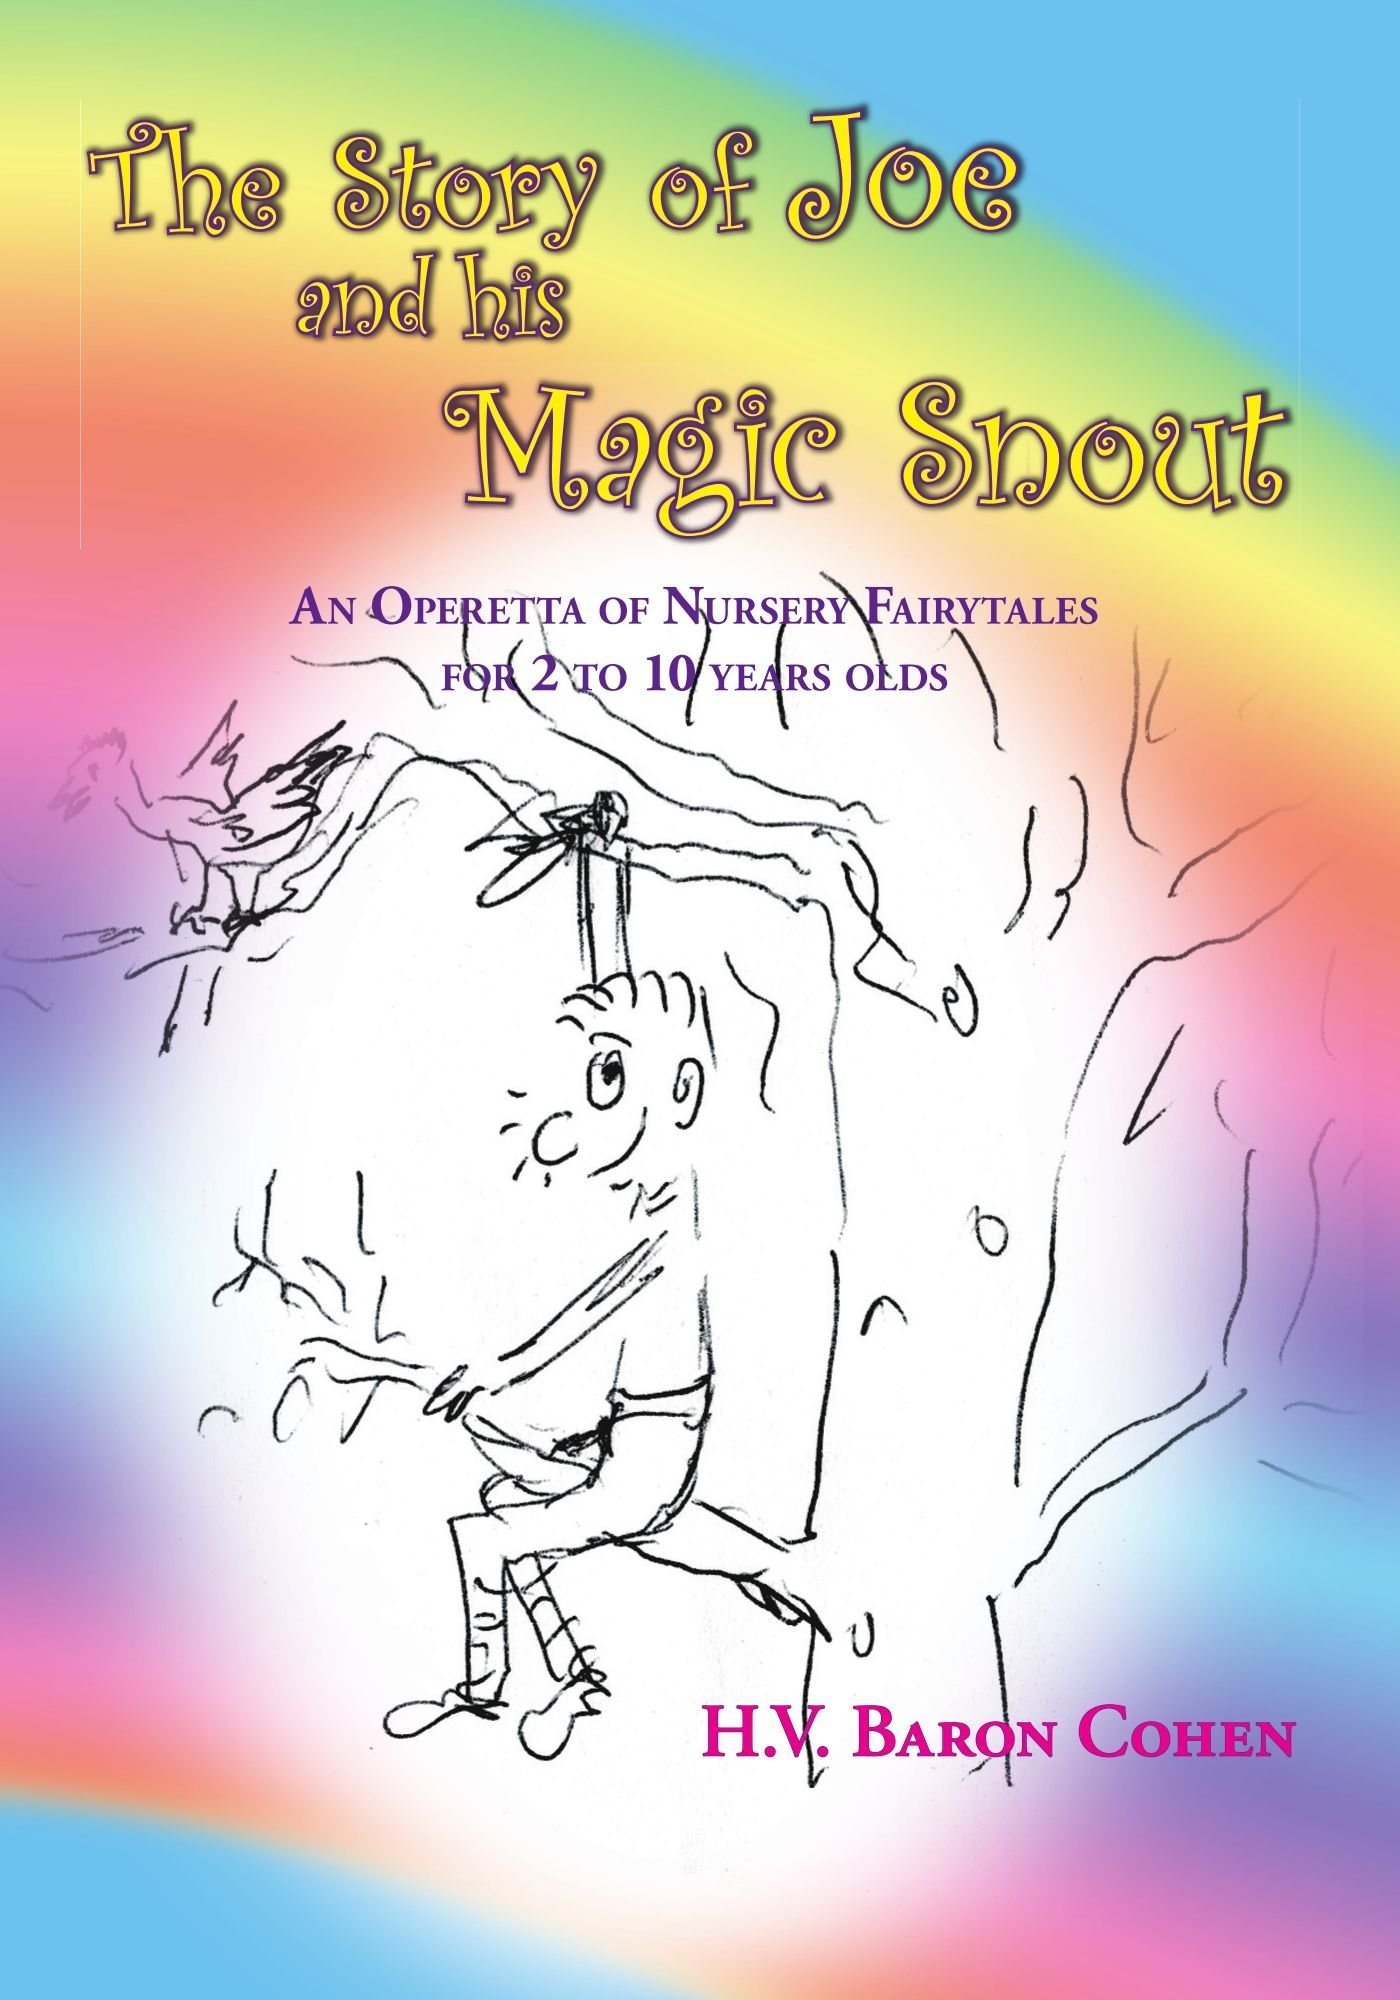 The Story of Joe And His Magic Snout: An Operetta of Nursery Fairytales for 2 to 10 years olds pdf